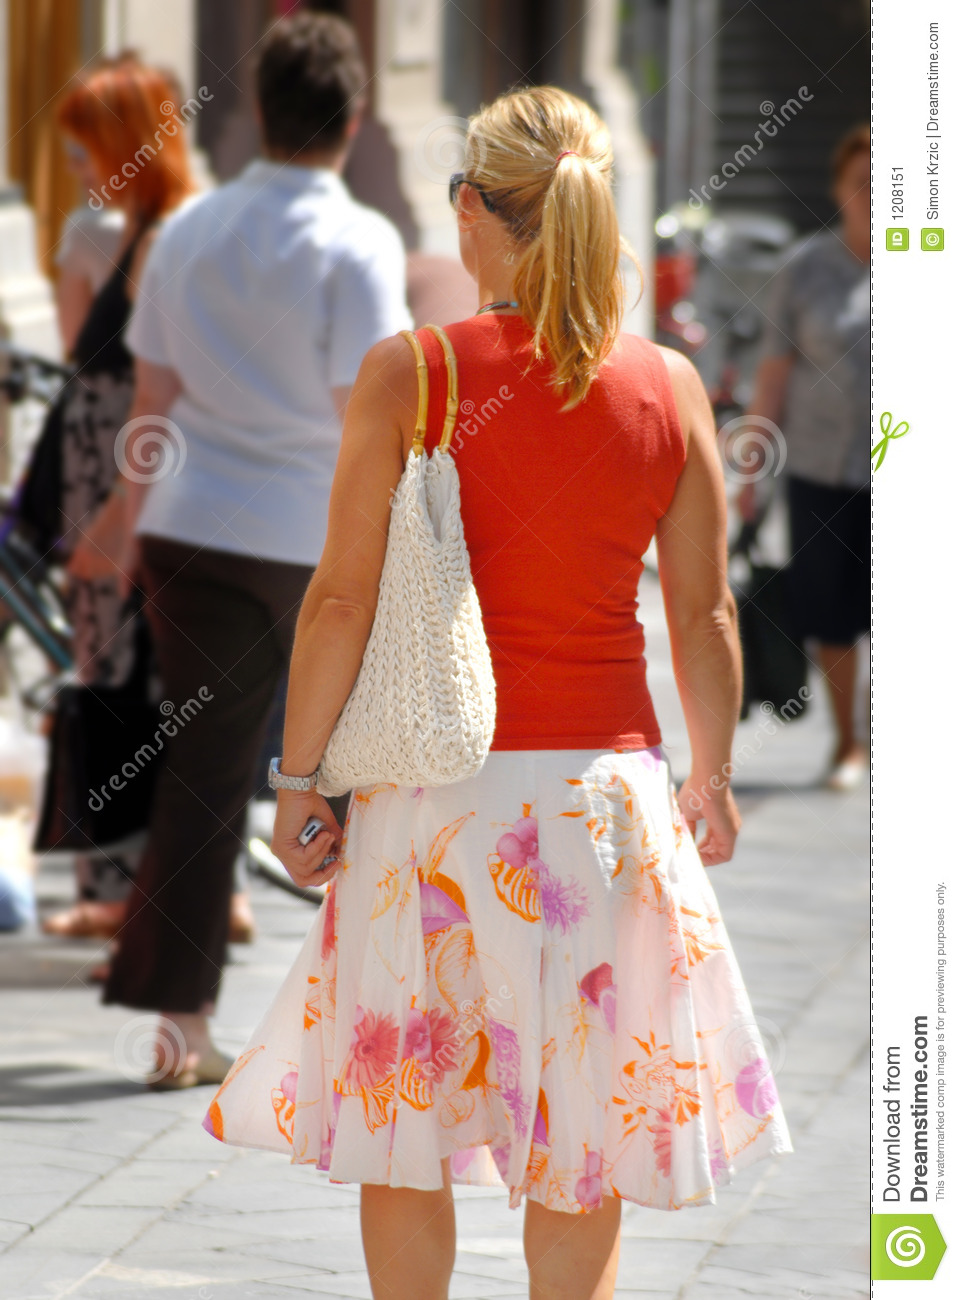 Businesswoman girl walking down the street slovenia europe